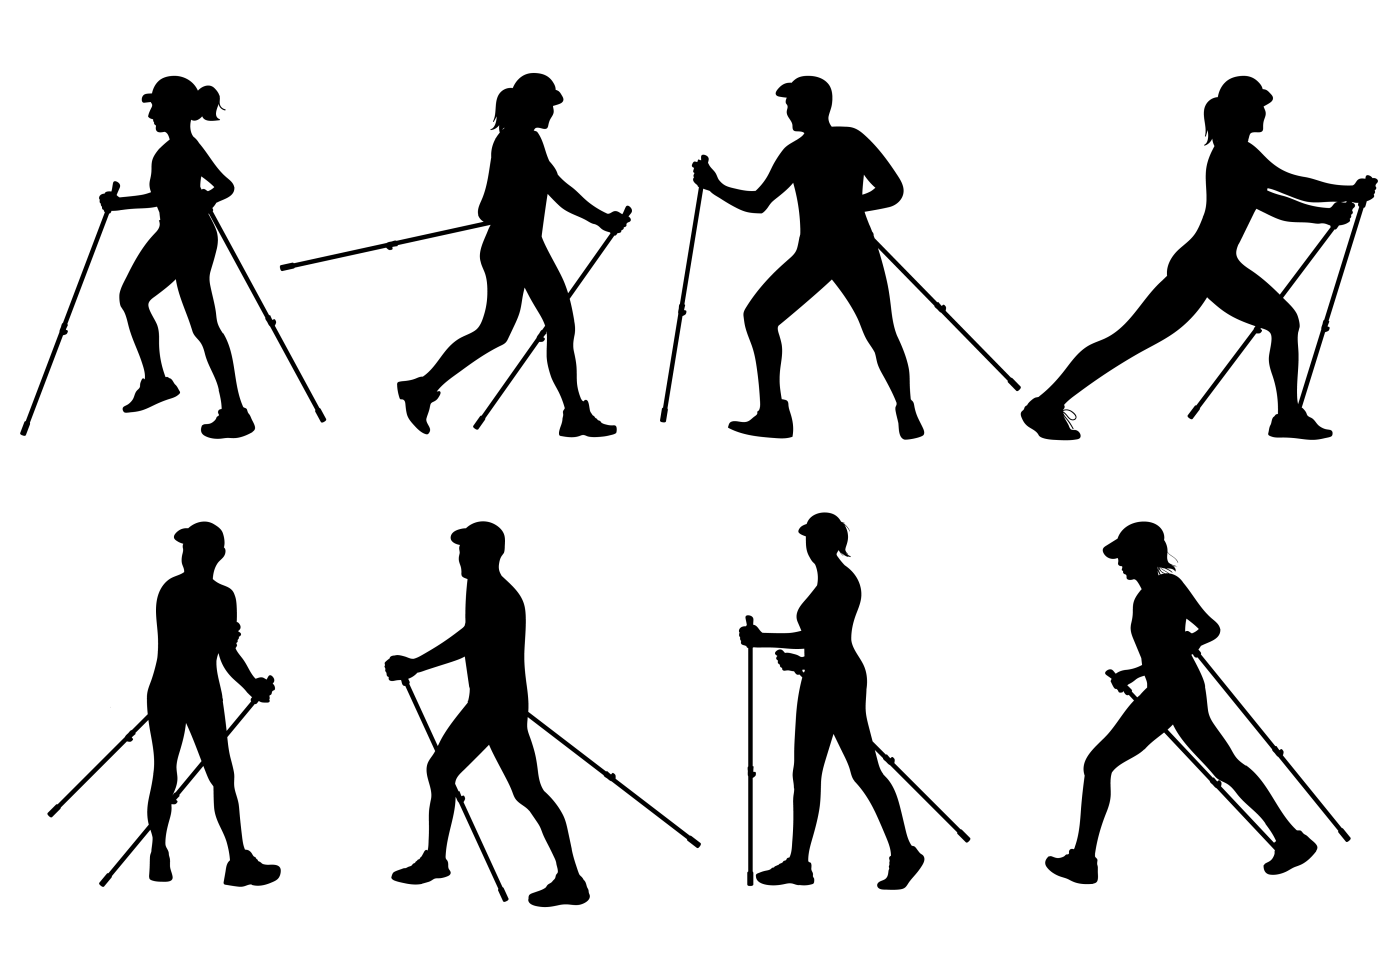 Nordic Walking Silhouettes Vector